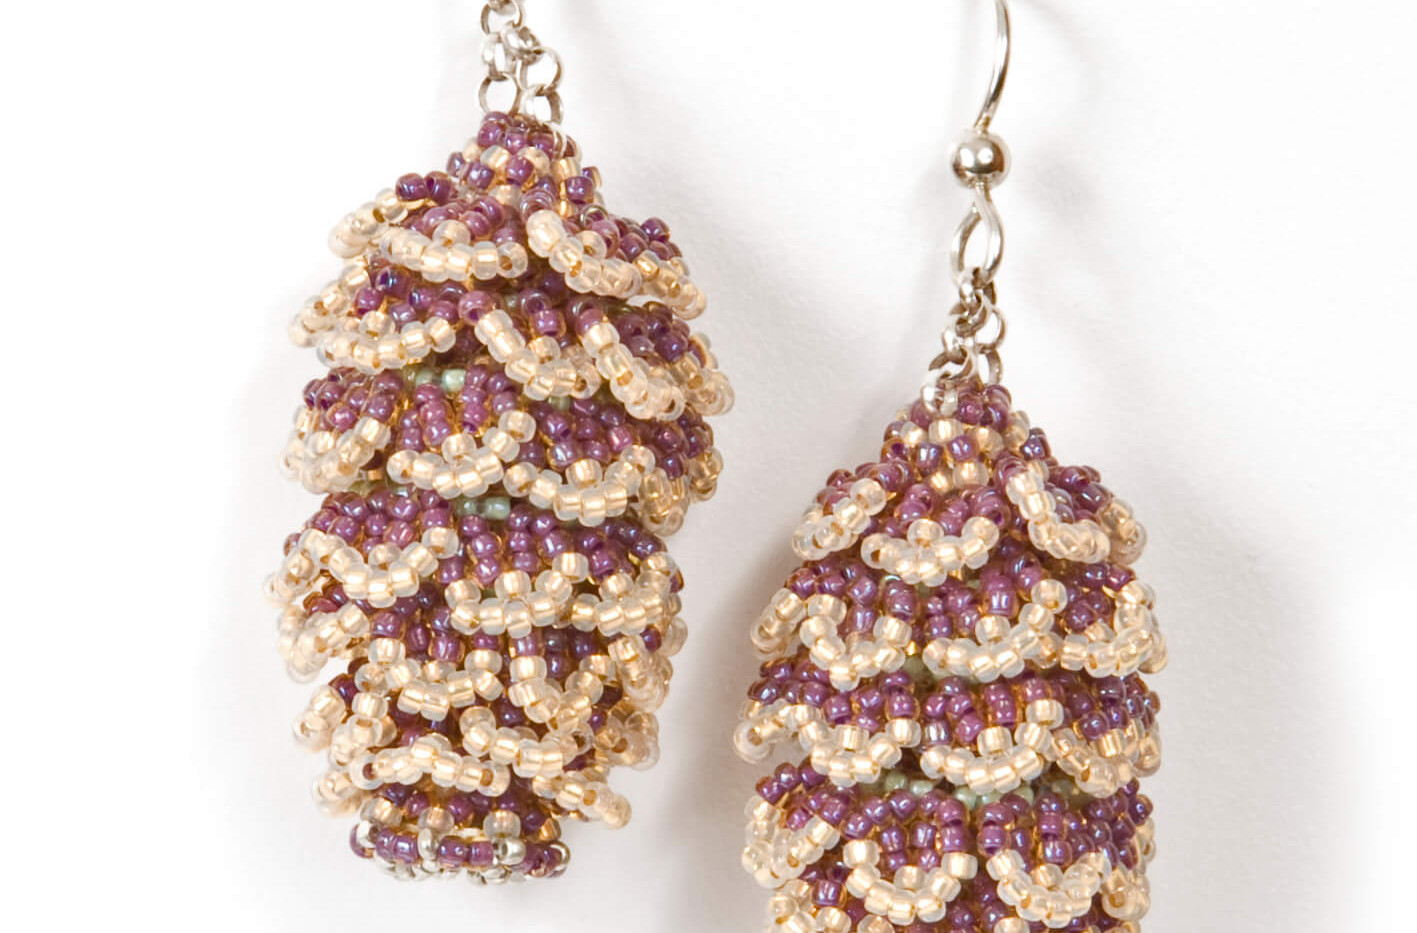 Pining Earrings in Mint and Amethyst